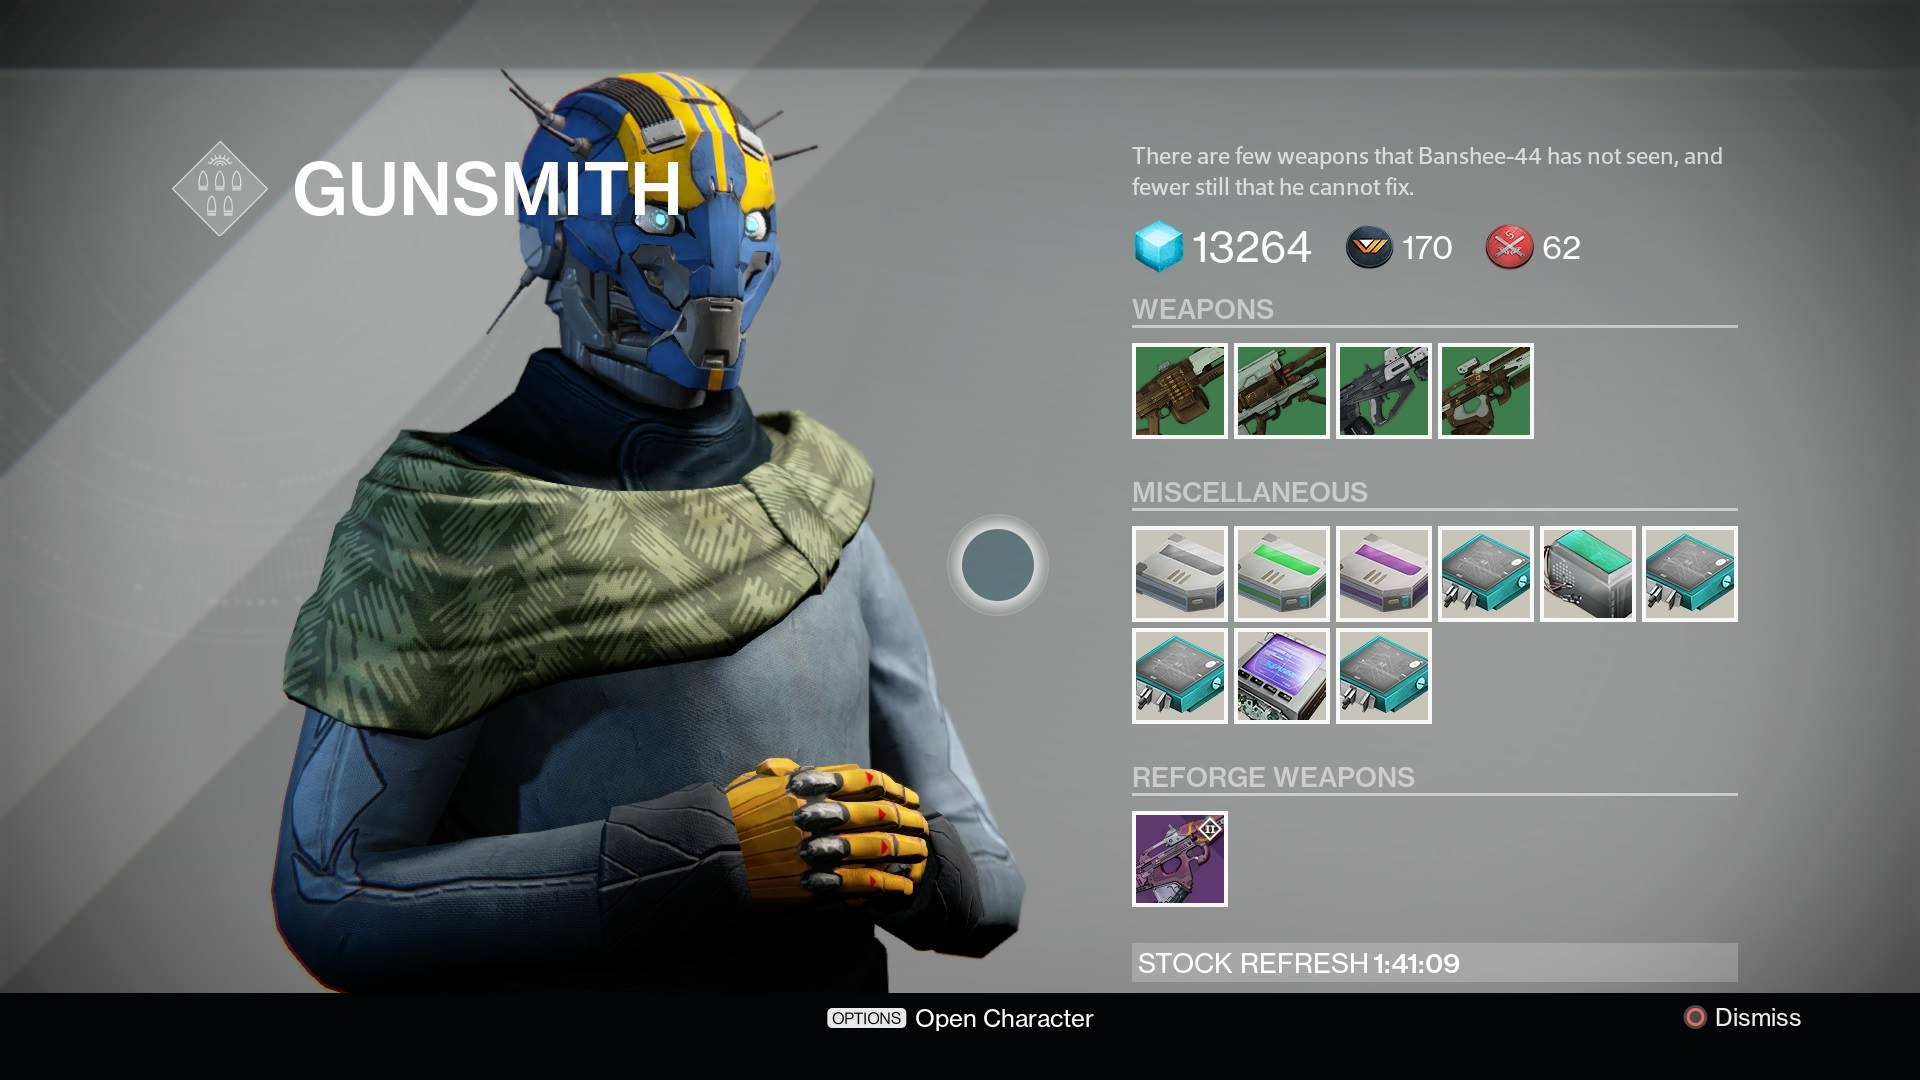 tower_vendors_gunsmith